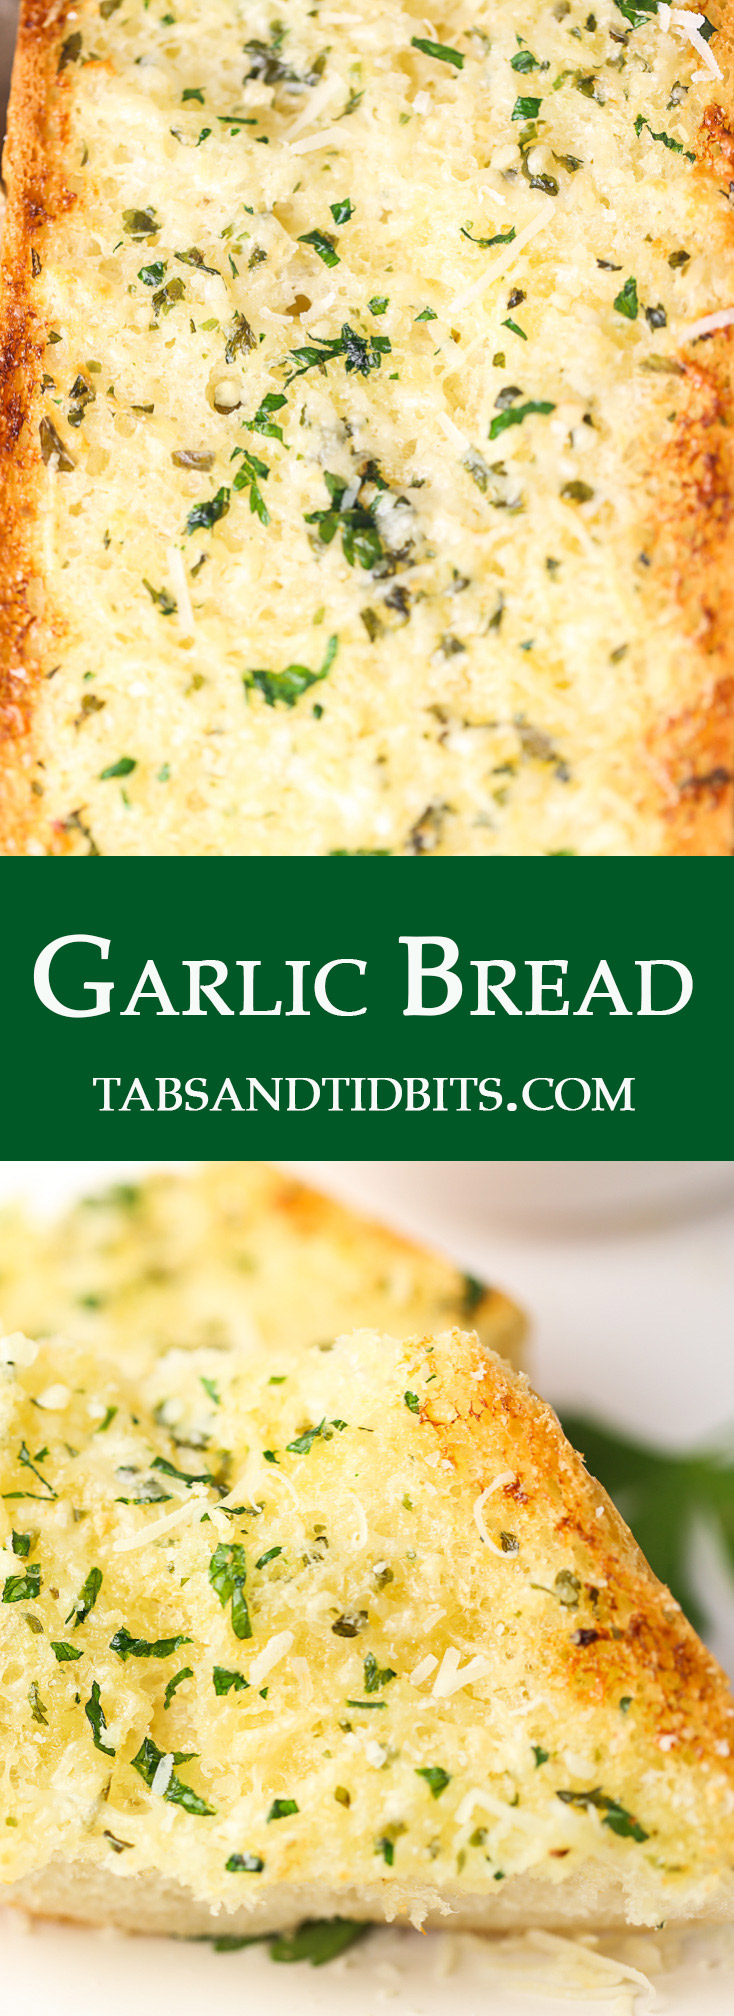 Full of buttery garlic with the perfect balance of seasonings and toped off with fresh parmesan cheese!